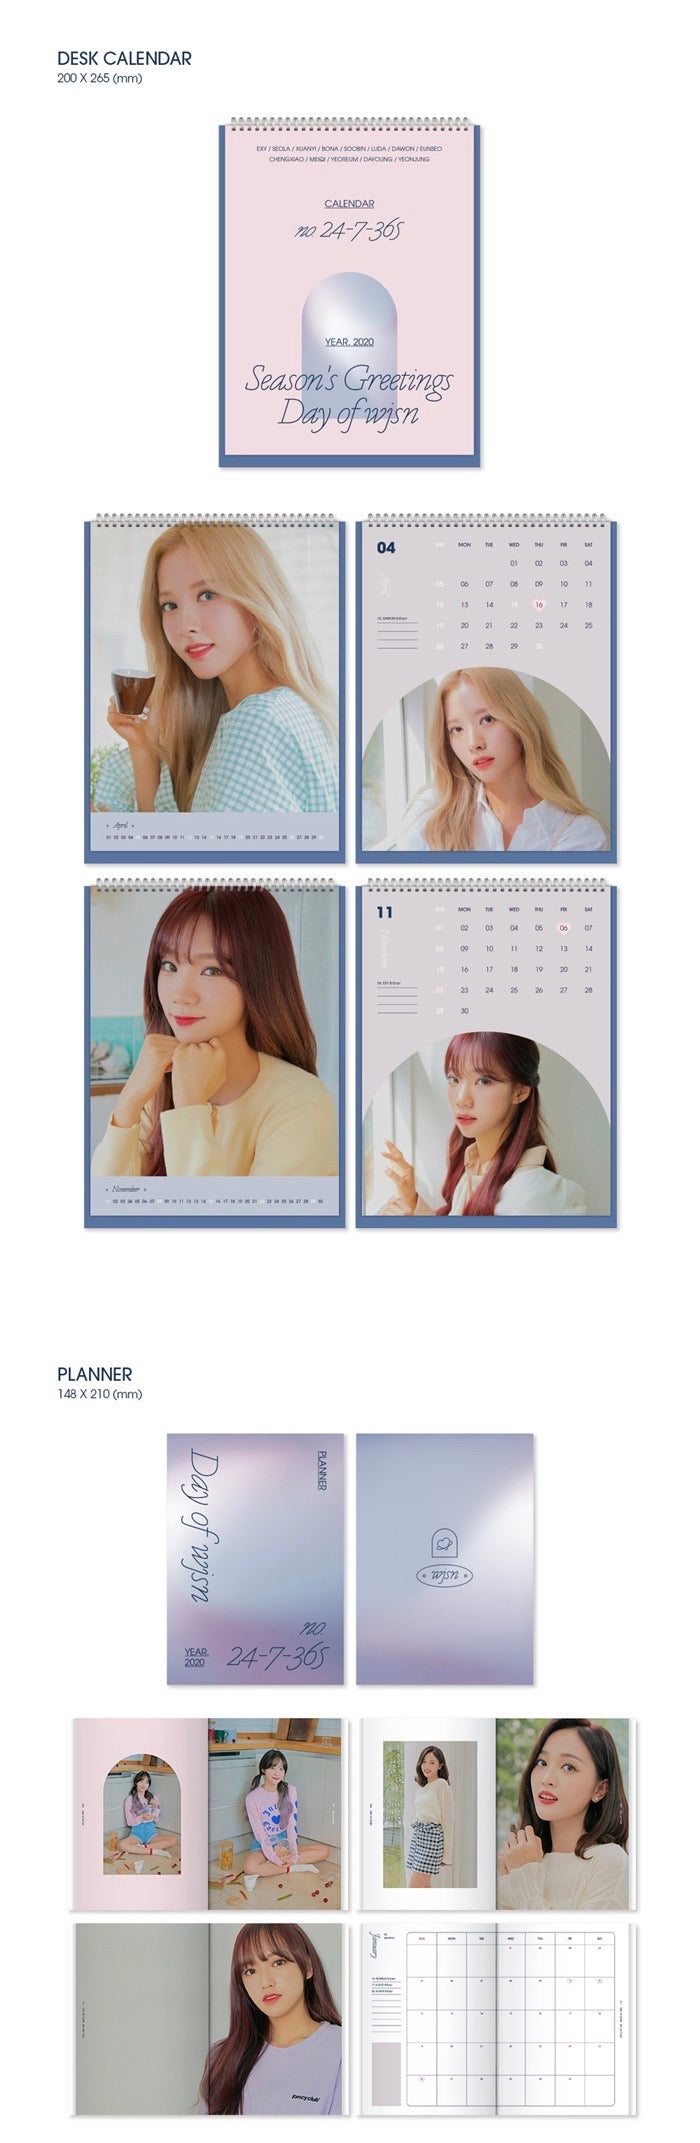 WJSN - 2020 Season's Greetings - Pre-Order